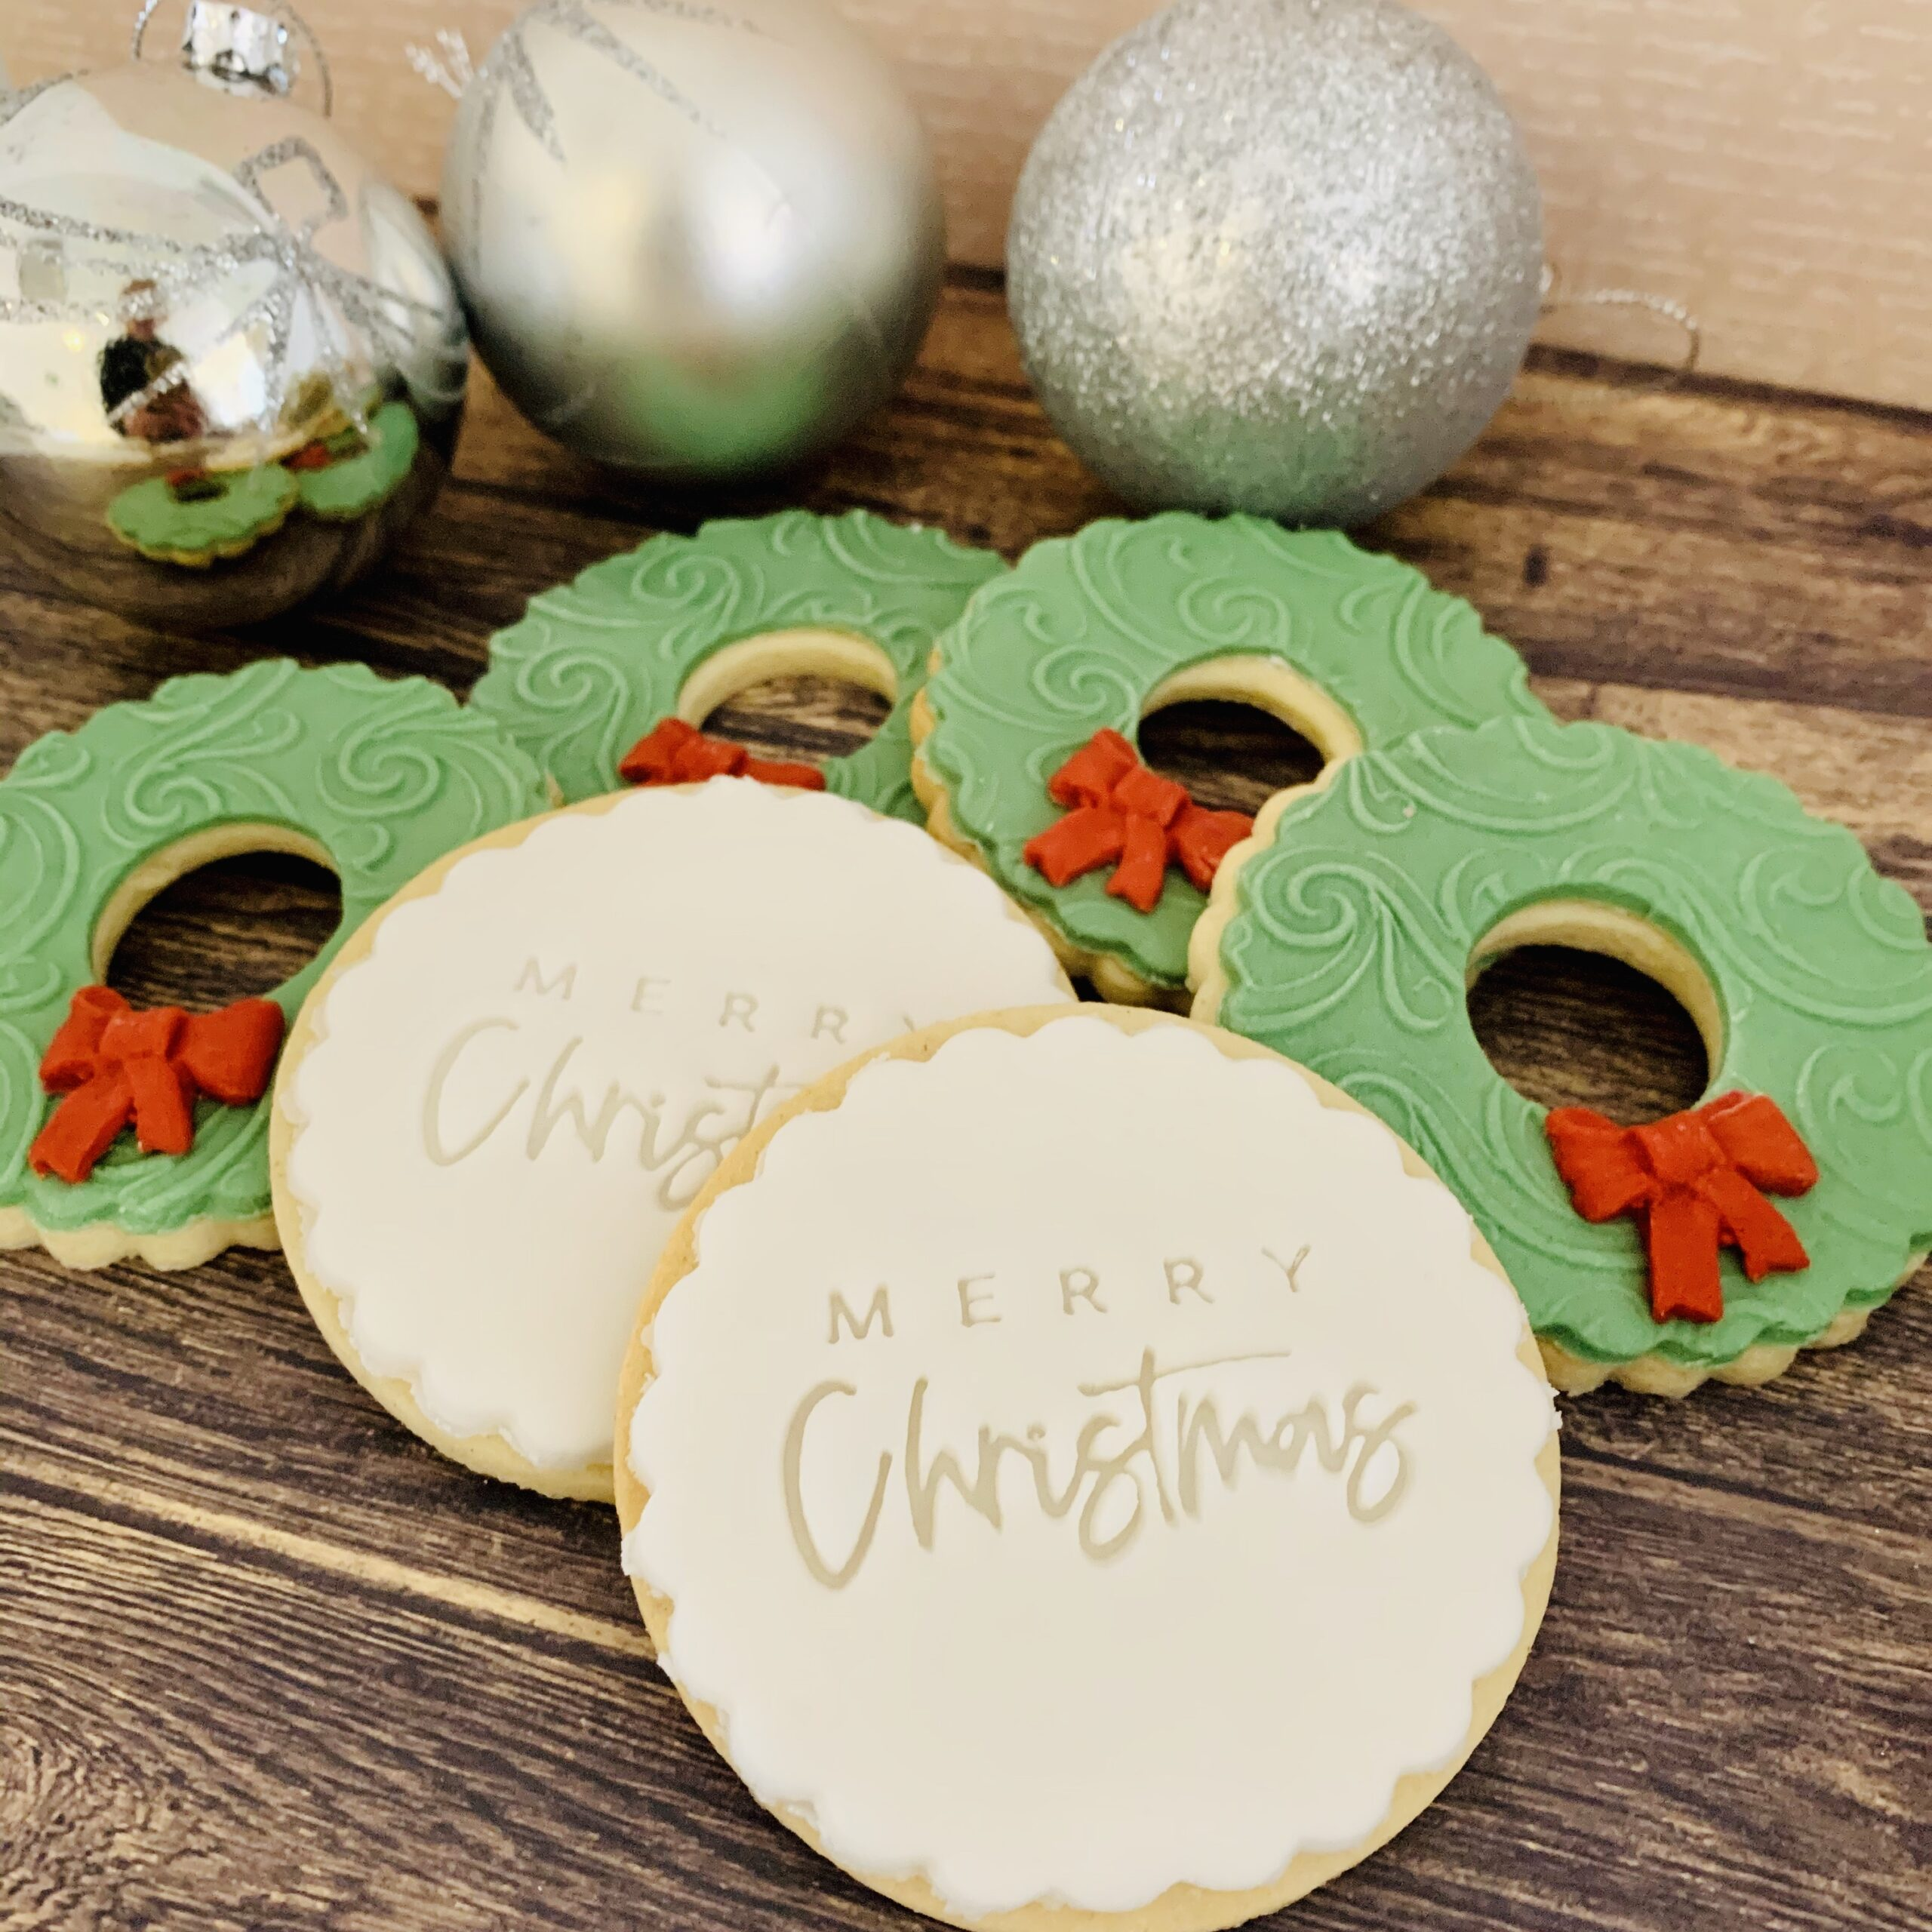 Festive Christmas biscuit gift box from Enchanting Bakes.